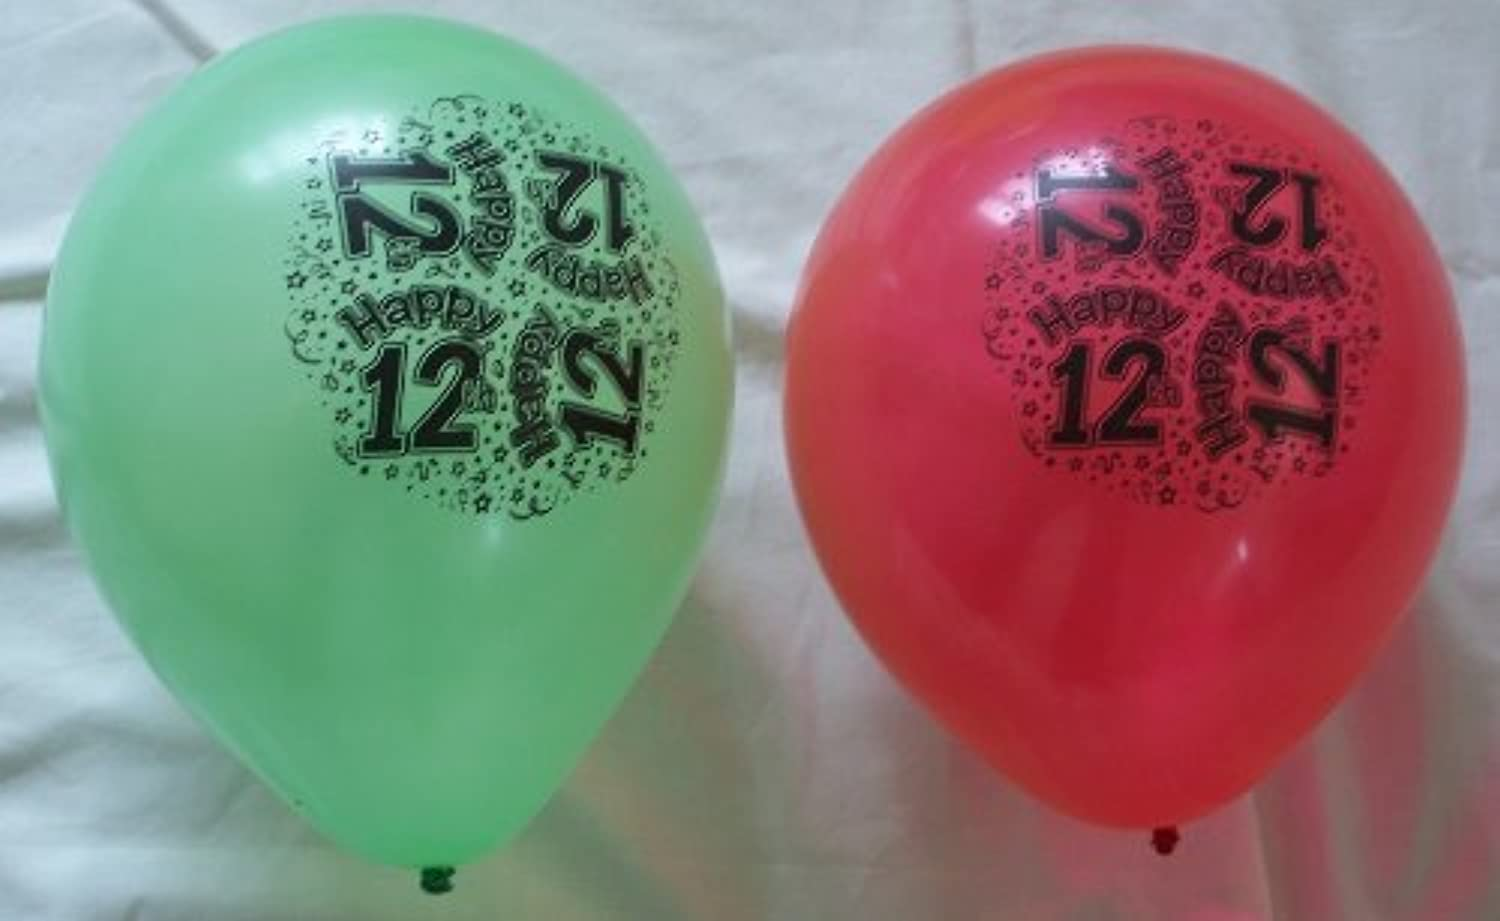 PACK OF 8 HAPPY 12TH BALLOONS CAN BE INFLATED WITH HELIUM OR AIR BOY OR GIRL by BCBGMAXAZRIA